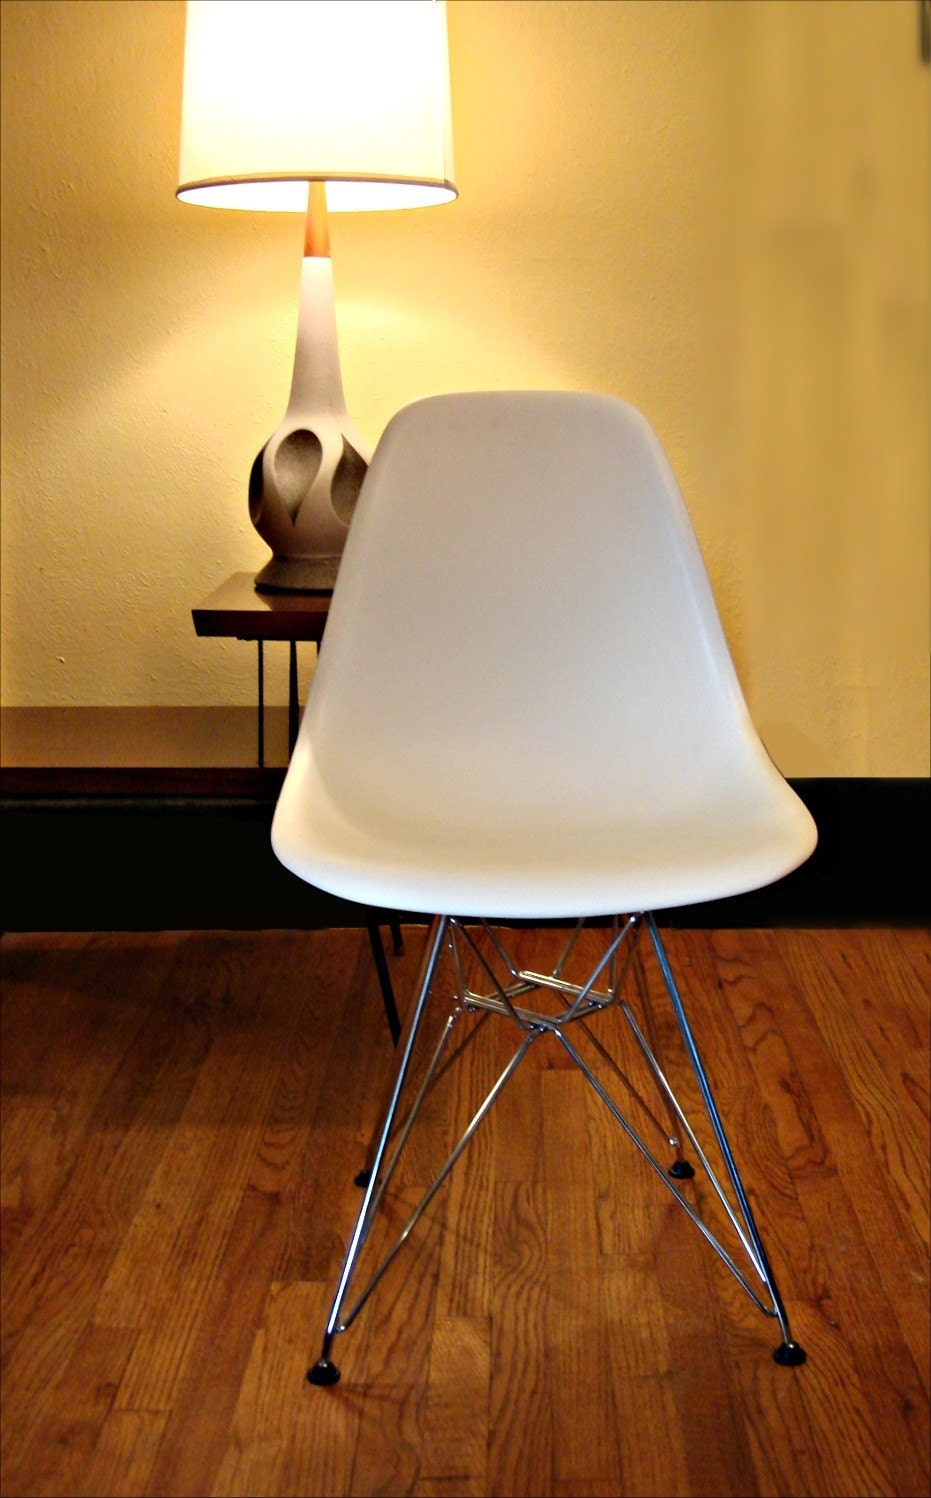 Charles Eames White Eiffel Tower Shell Chair By JBHoffman On Etsy